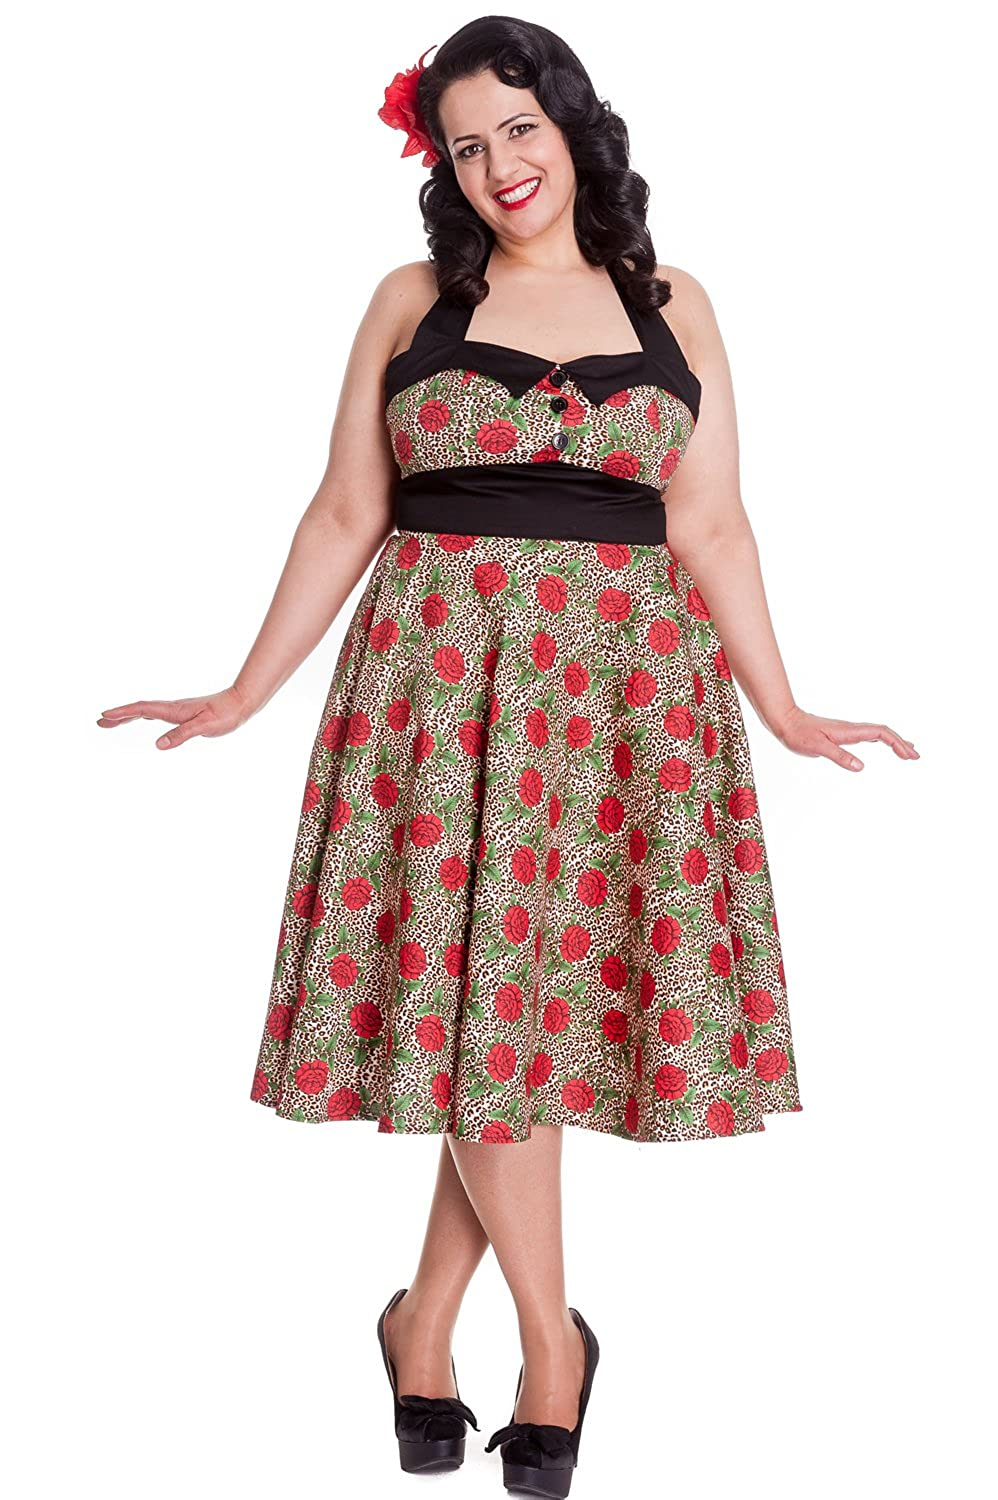 Plus Size Swing Dresses, Vintage Dresses Hell Bunny Plus Rockabilly Charlie Dress in Leopard and Red Rose Party Dress $69.00 AT vintagedancer.com